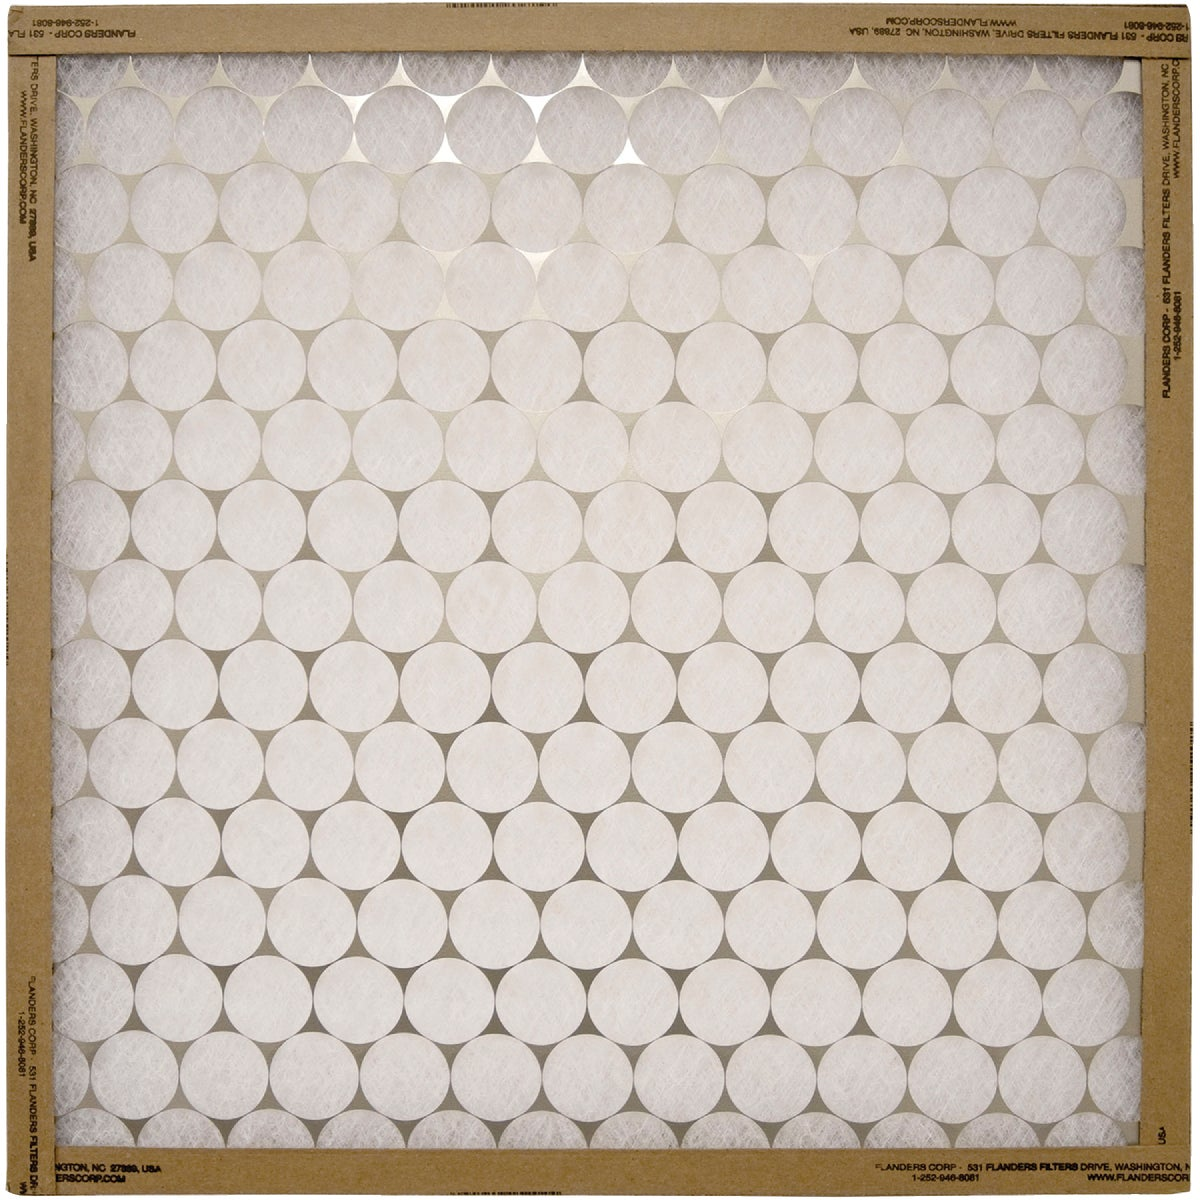 22X22 FURNACE FILTER - 10255.012222 by Flanders Corp